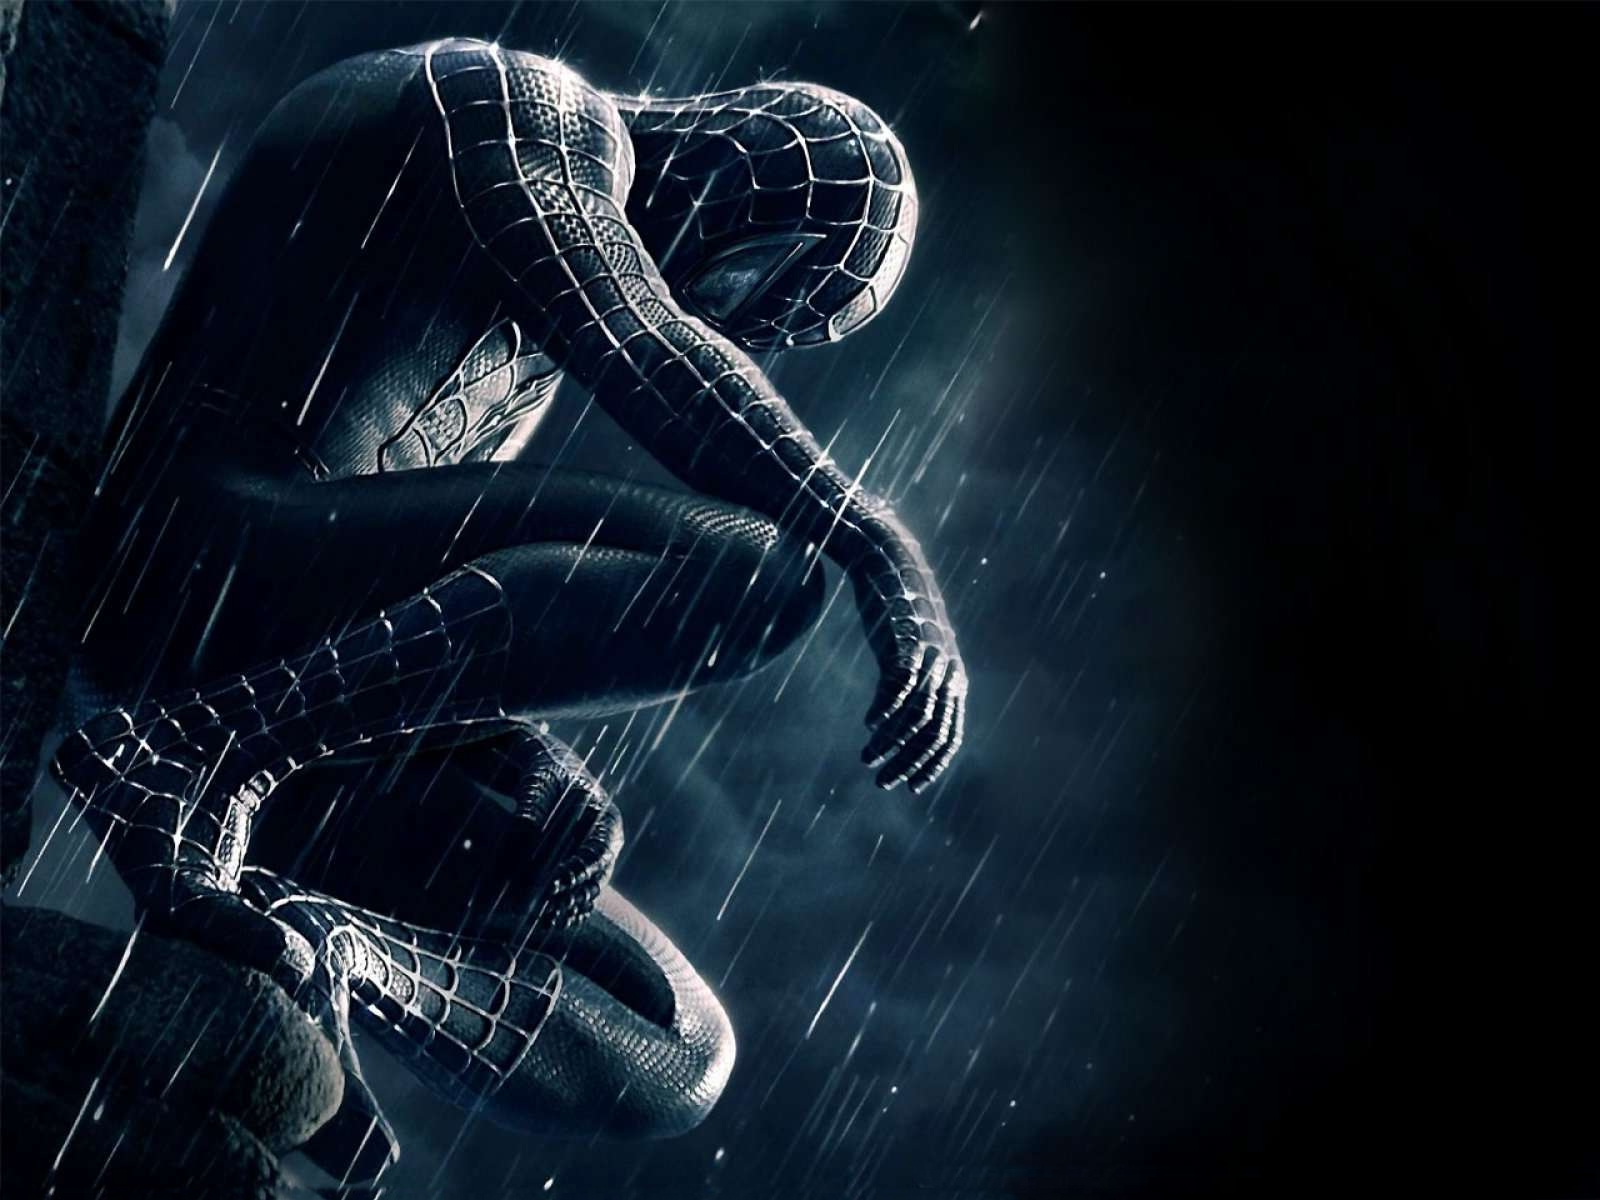 71+ Black Spiderman Wallpaper on WallpaperSafari